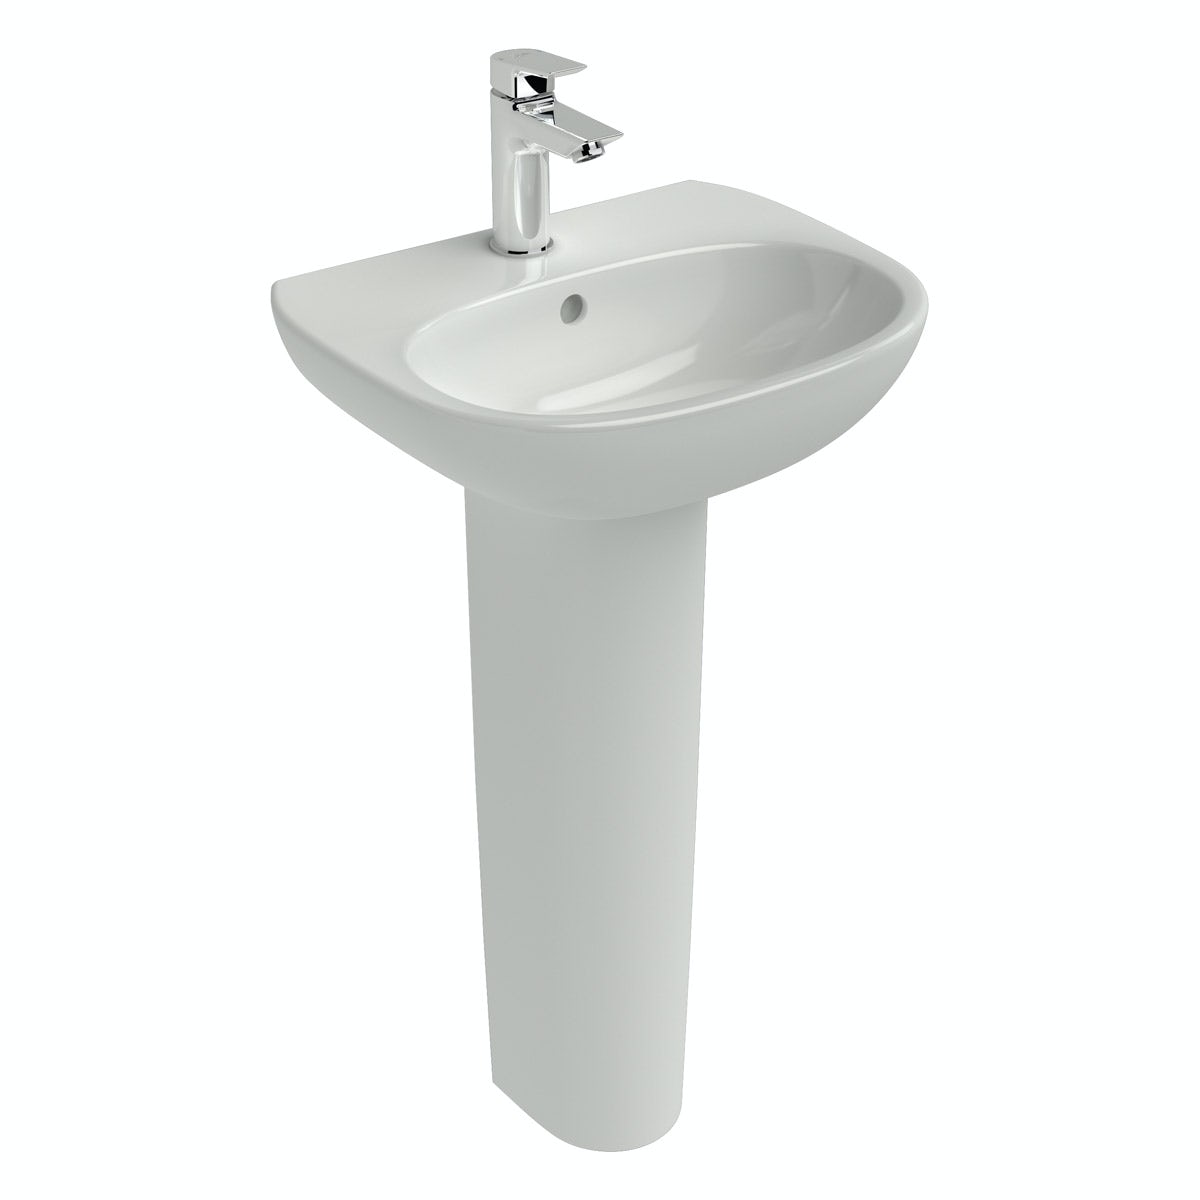 Ideal Standard Tesi 1 tap hole full pedestal basin 450mm